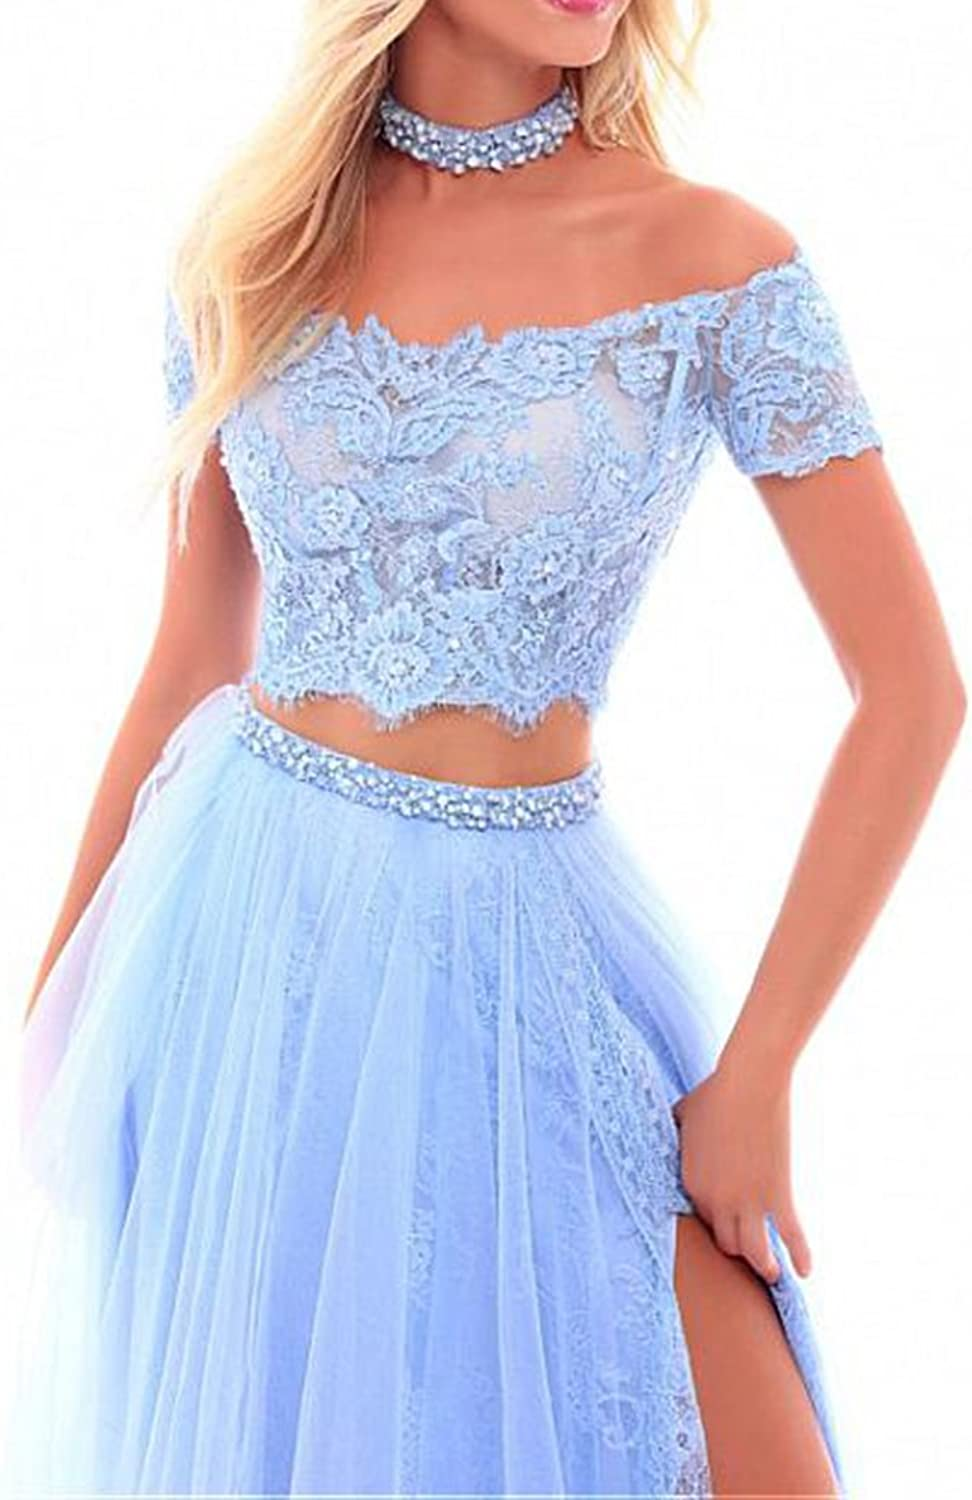 Chenghouse 2 Piece Prom Dresses 2018 Off The Shoulder Lace Prom Dress